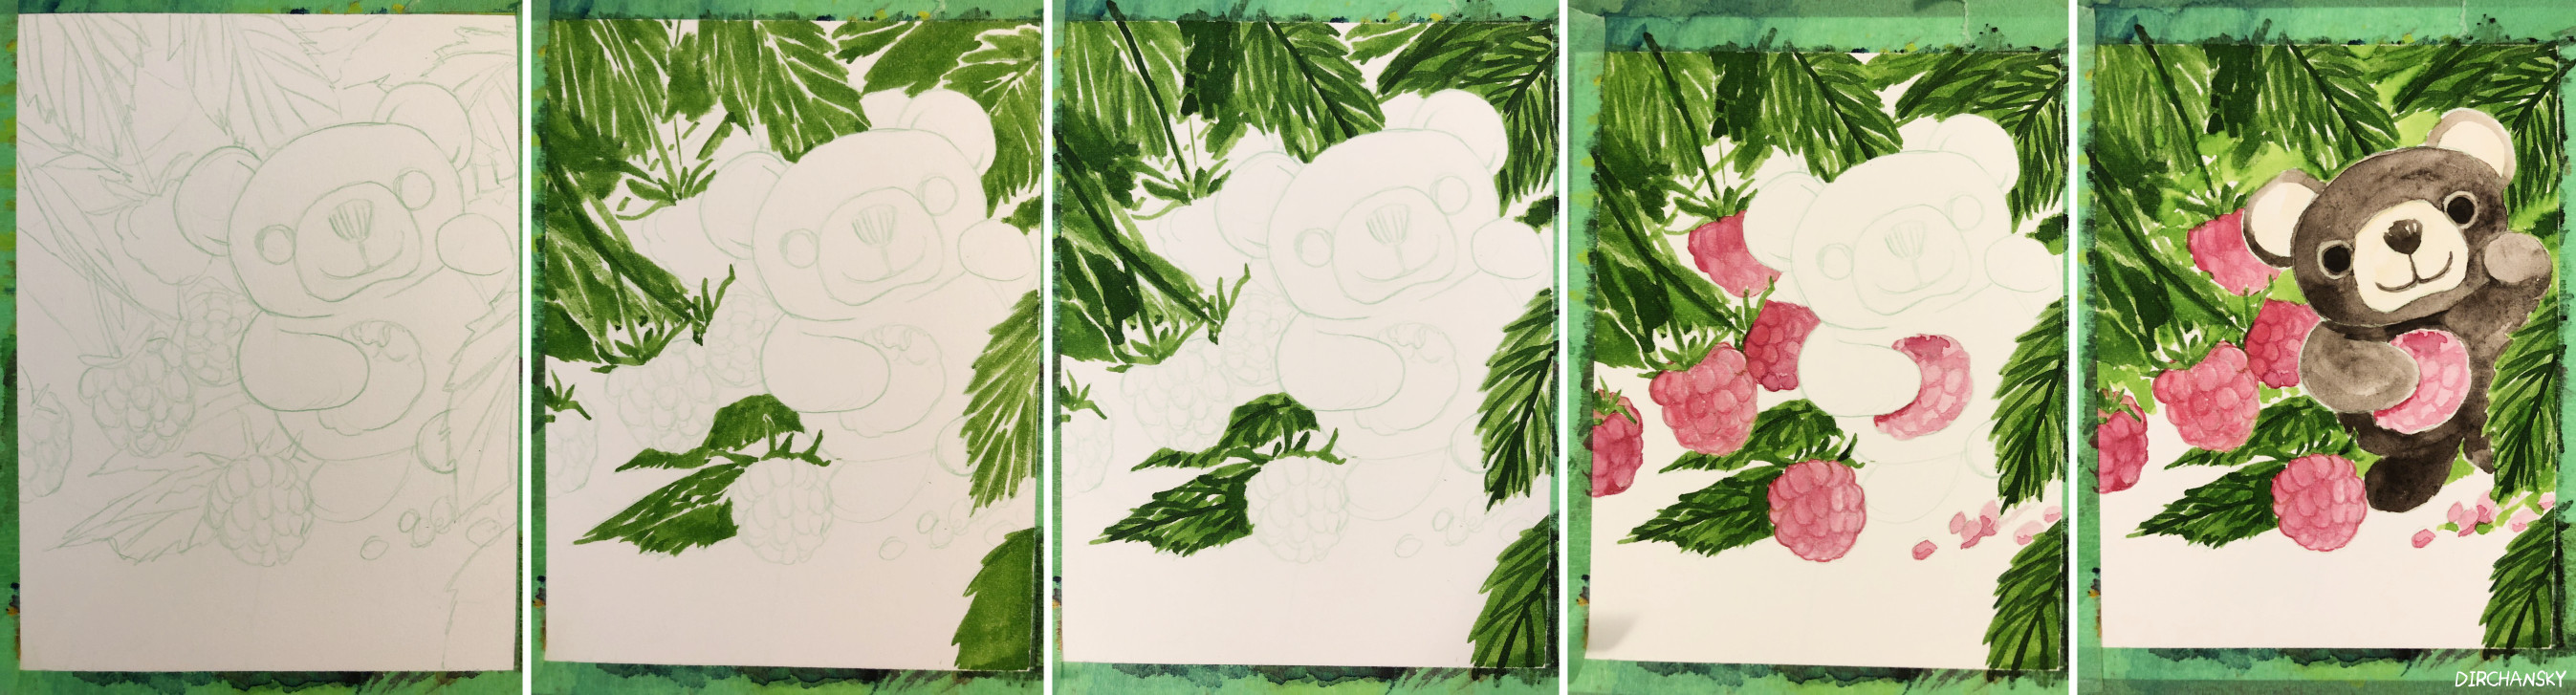 Photo collage of several work-in-progress paintings, showing progression of painting of a little brown bear nestled in a bush of raspberries and leaves